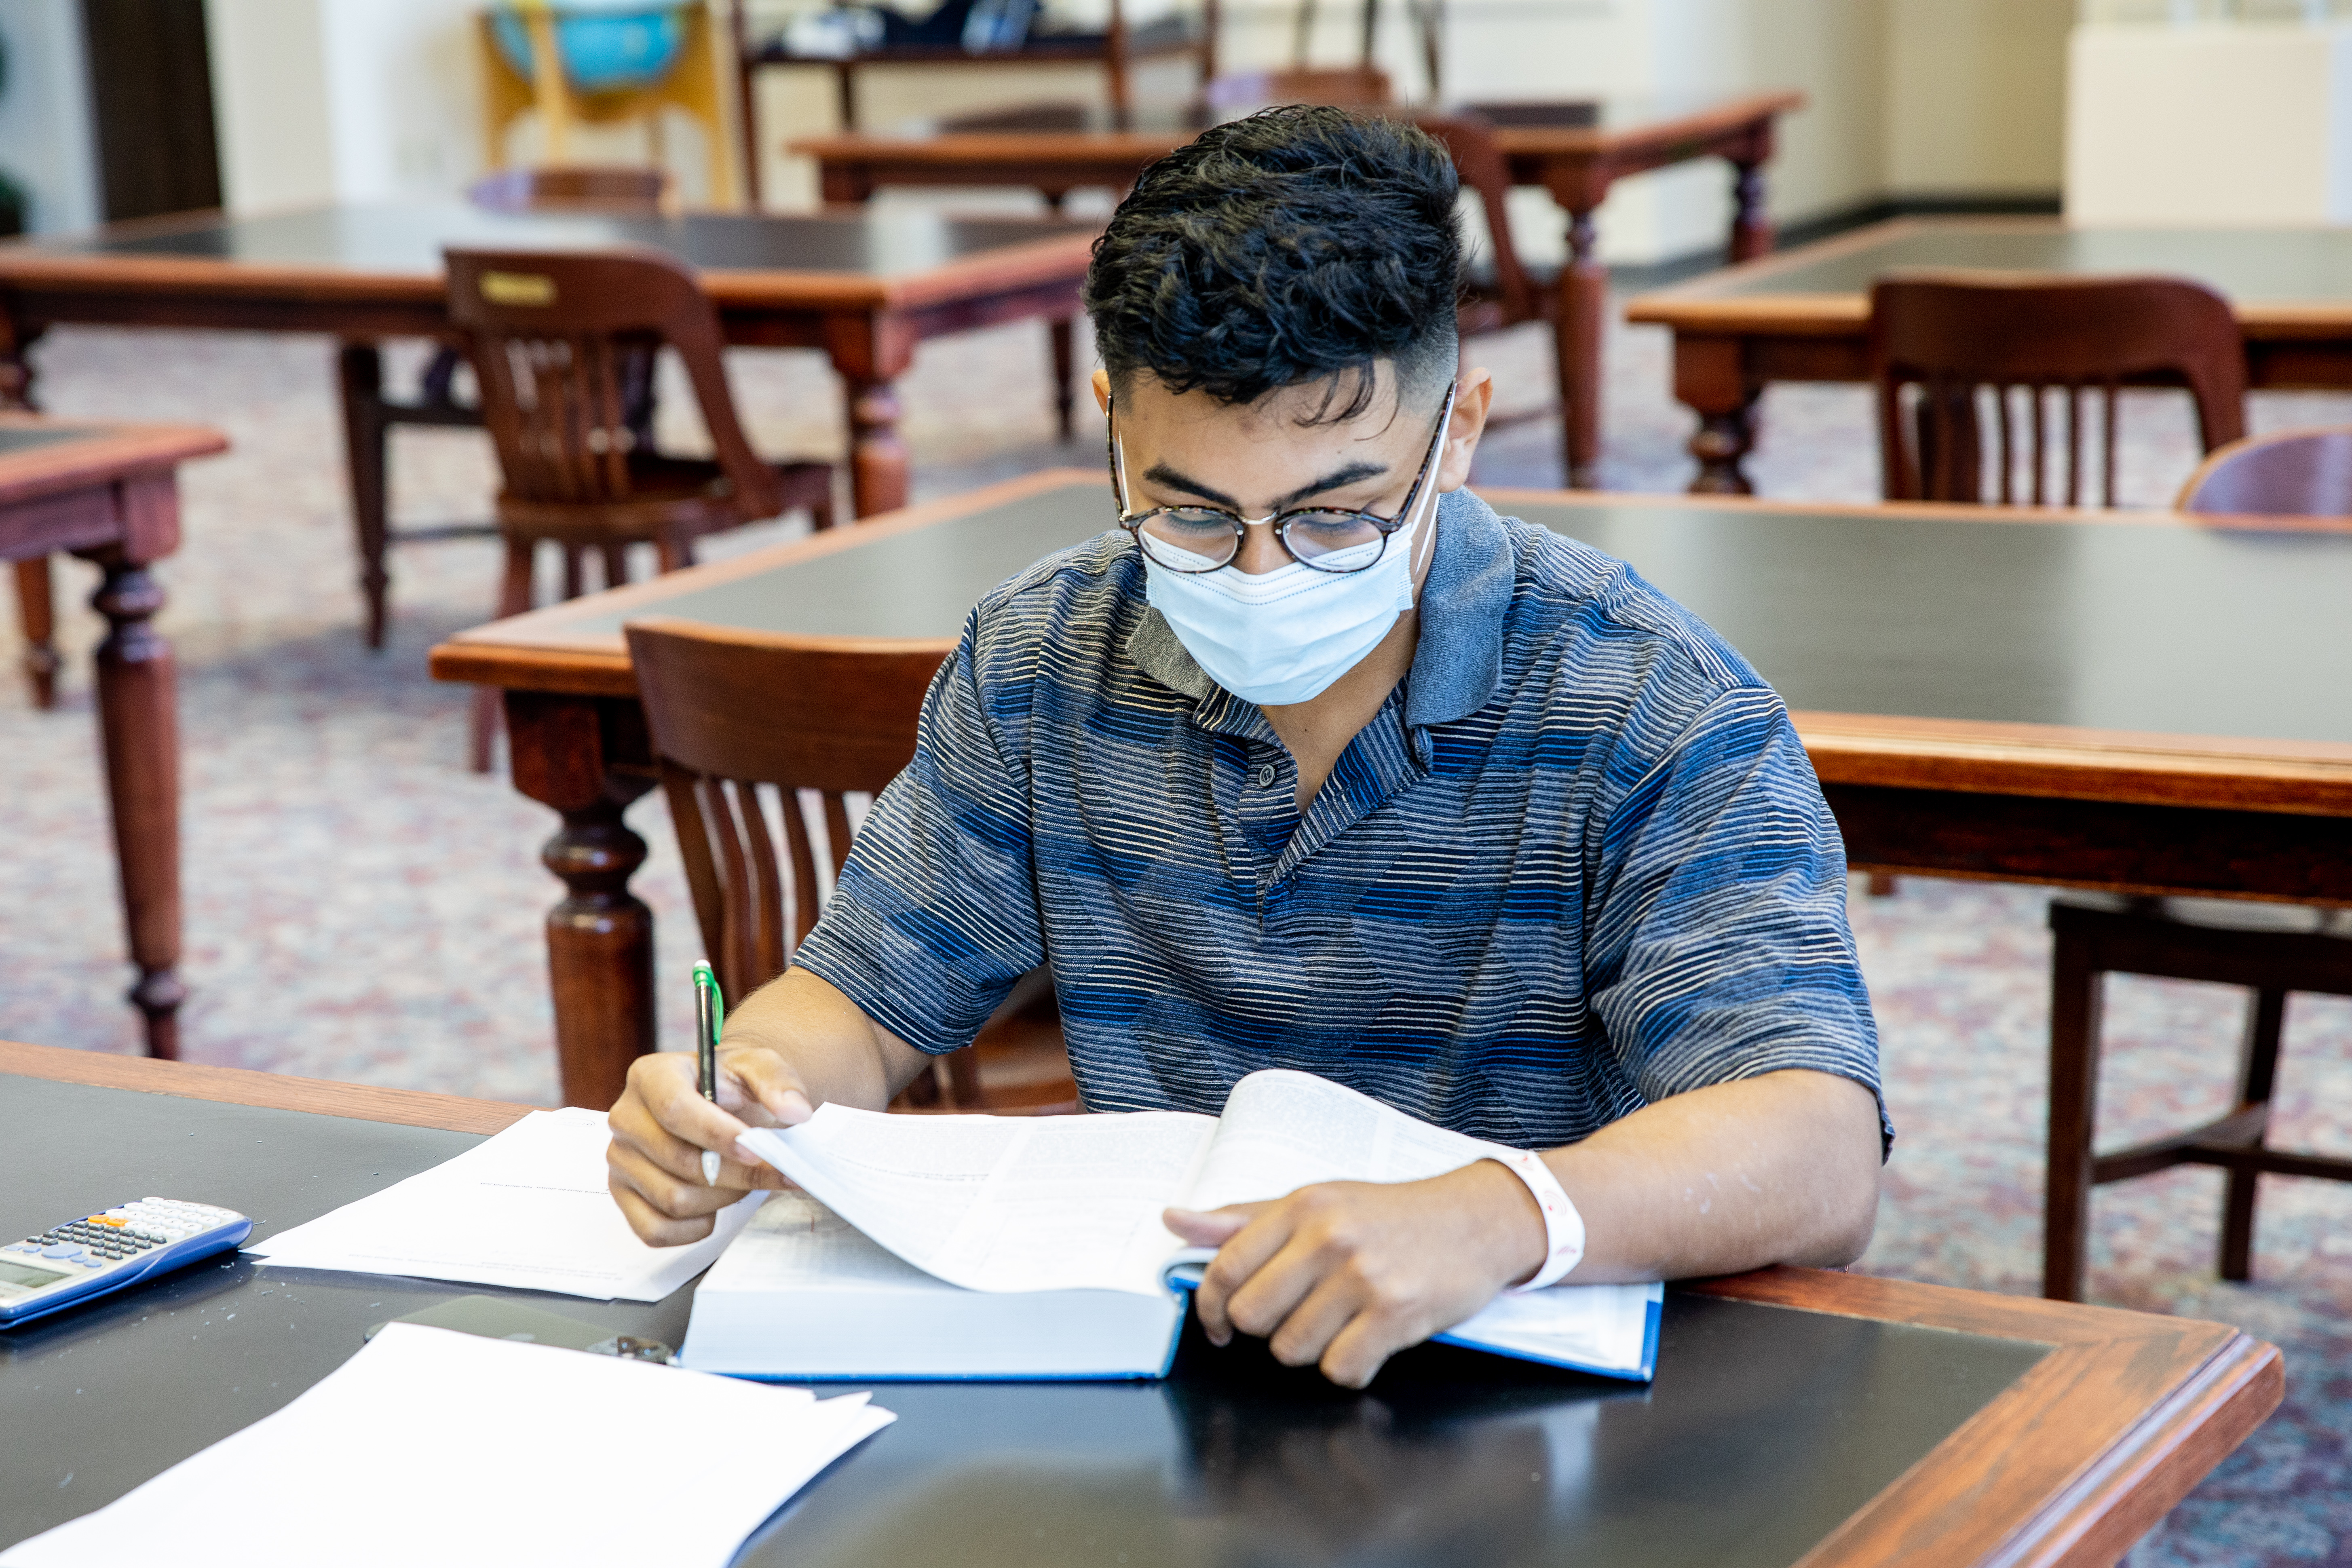 Student wearing a mask sits at a table in the library reading from a textbook.